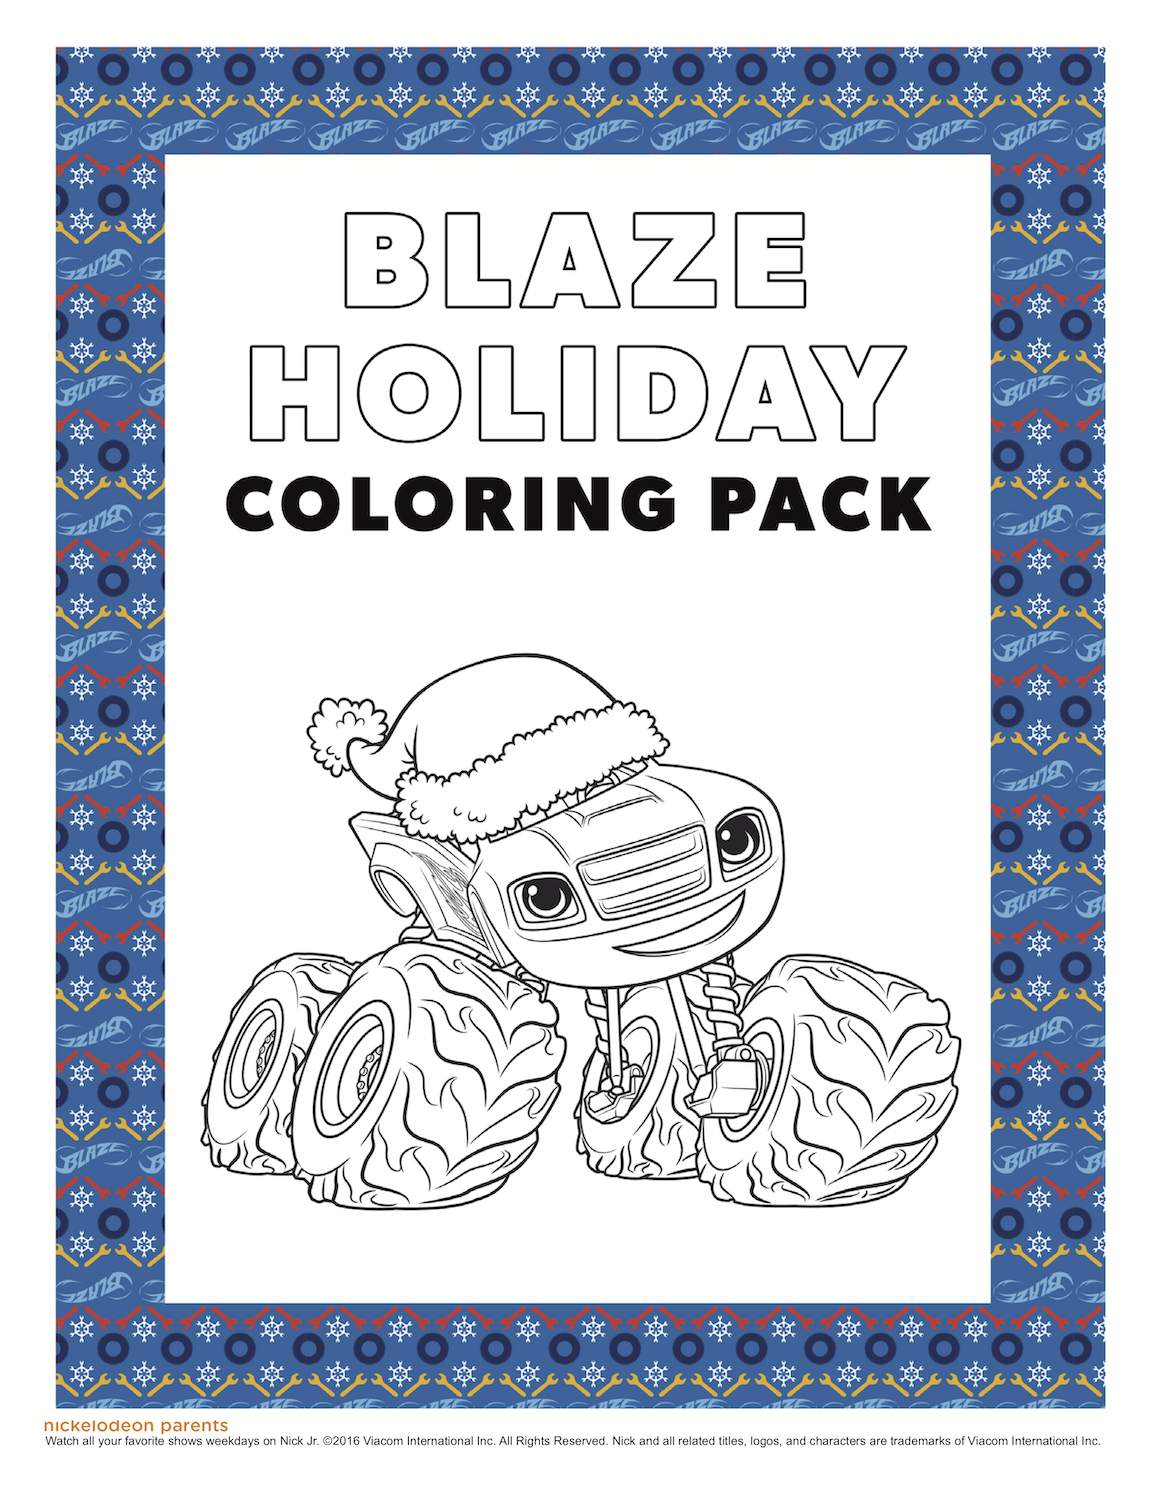 Free Blaze Holiday Coloring Pack Christmas Printable Snowman Coloring Pages Holiday Coloring Book Coloring Pages [ 1500 x 1159 Pixel ]